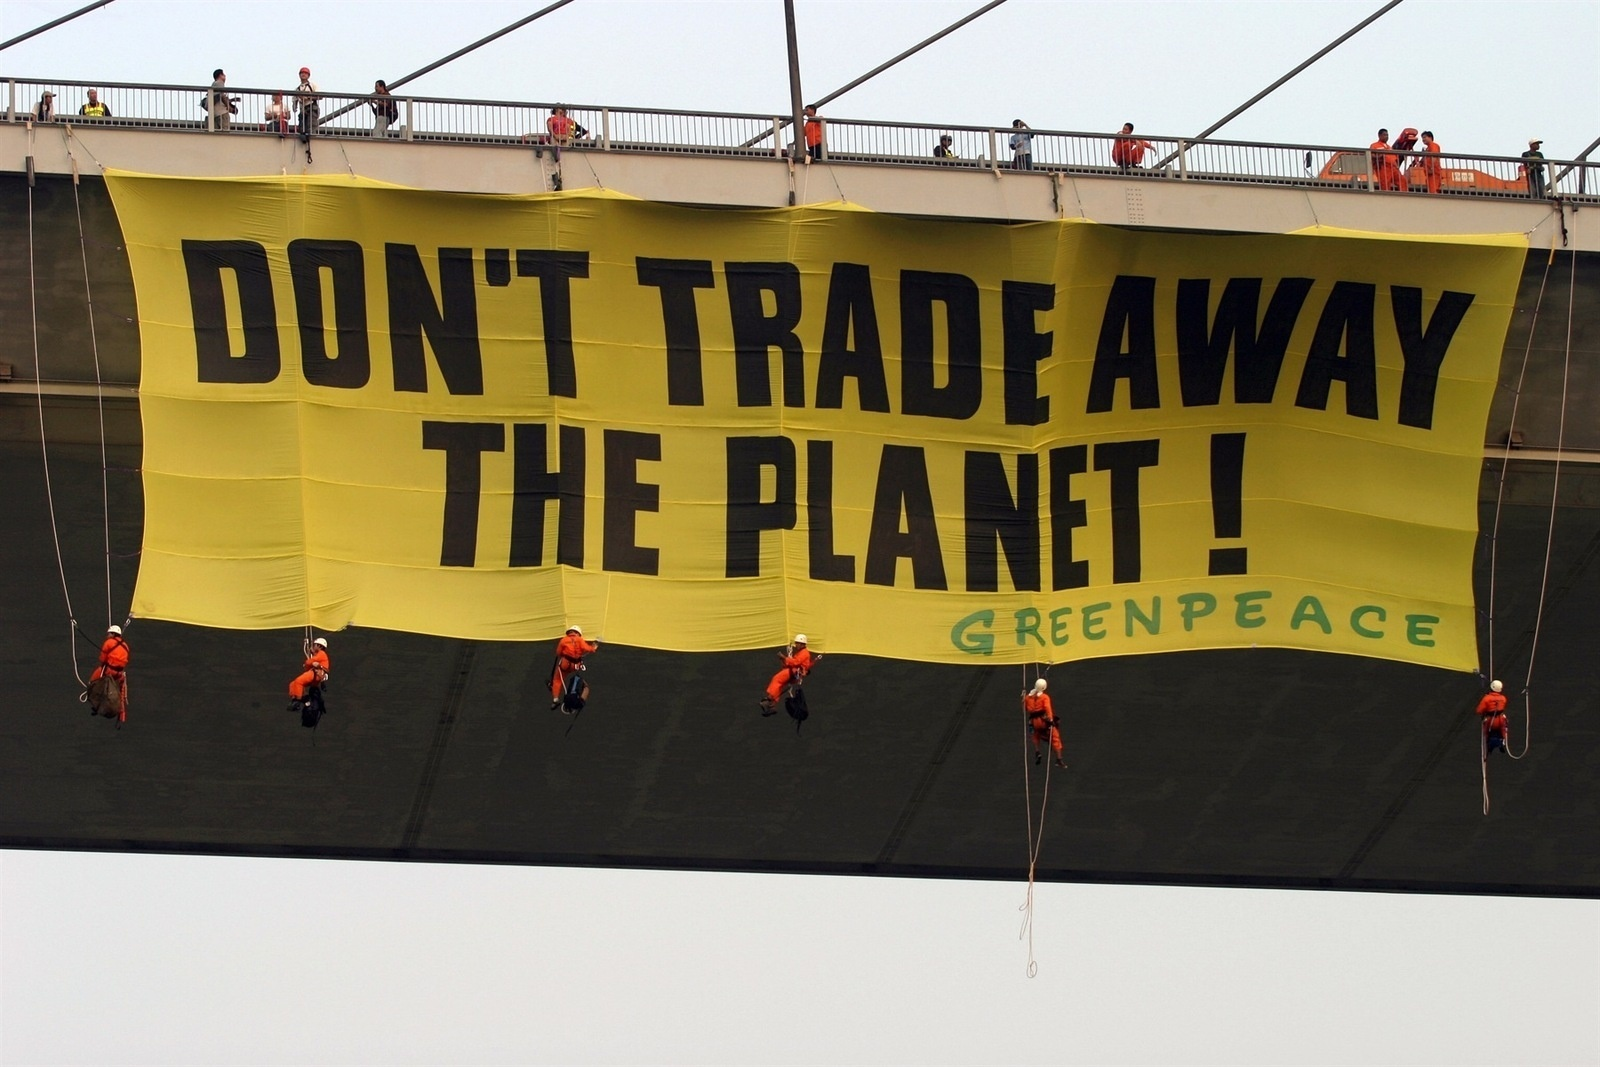 A group of Greenpeace activists hang a huge banner from the Rama IX bridge in the Thai capital Bangkok. About 14 activists took part in the demonstration, including six climbers who abseiled down from the bridge to hang a banner which read 'Don't Trade Away the Planet'. The move was designed to remind delegates at the CITES conference, which closes in Bangkok today, to actively implement and enforce the positive decisions that were taken at the convention. Greenpeace has emphasised the need to end unregulated trade in endangered species. The action was coordinated by Greenpeace's Southeast Asia office. Illegal trafficking in wild animals remains a serious problem in Southeast Asia.